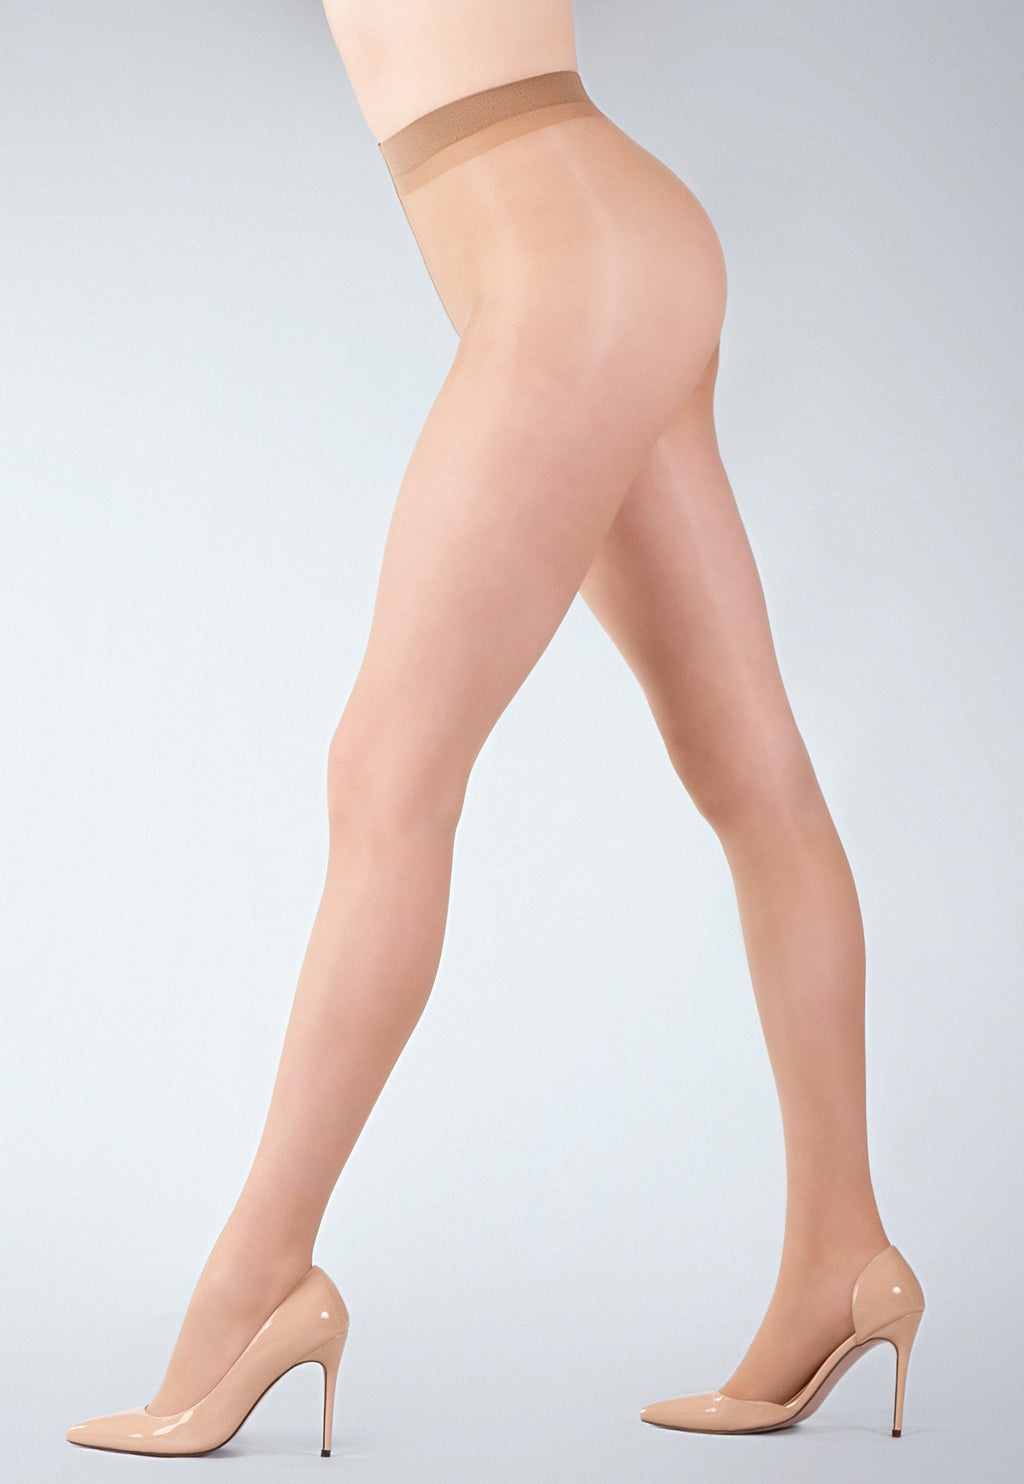 15 Den 'Bare Legs' 3D Ultra Sheer Tights 5 Pairs SAVE €5